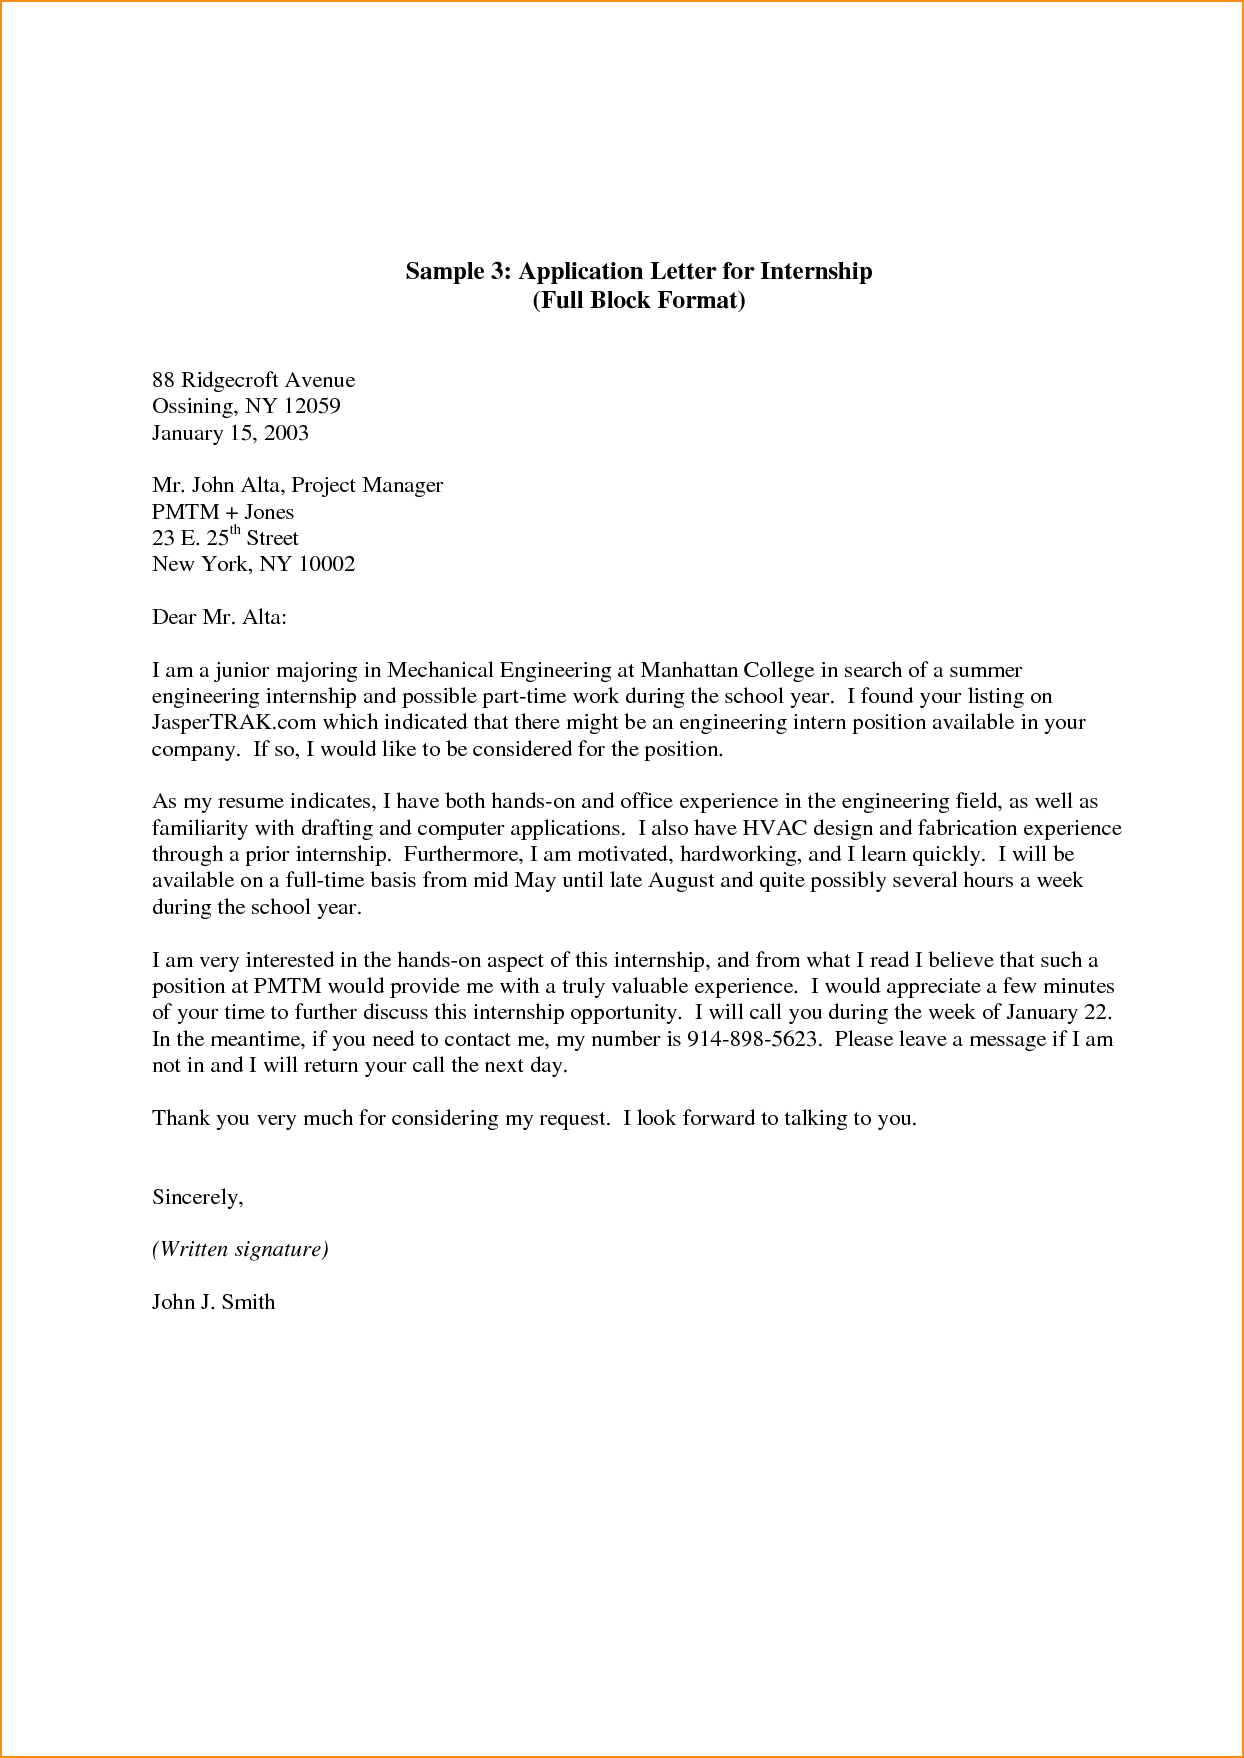 Simple Resignation Letter Format Sample Internship Application Writing Your Use These Samples